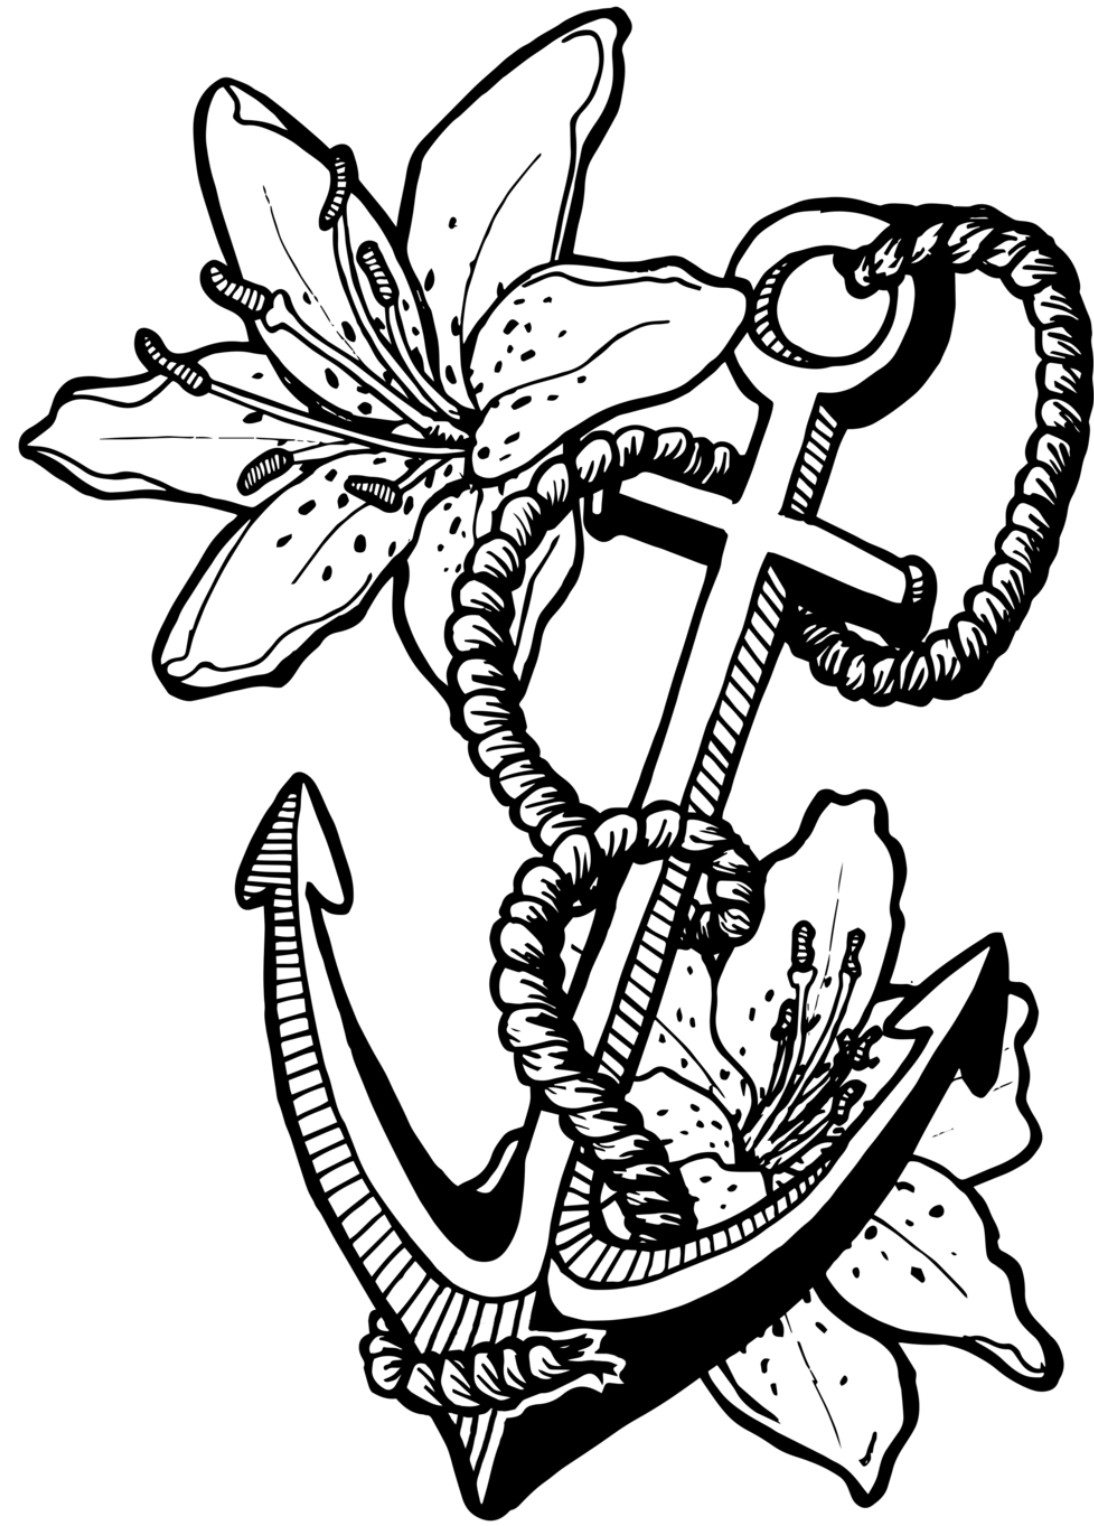 image relating to Printable Anchor called Anchor Coloring Site Anchor With Rope Coloring Site Cost-free